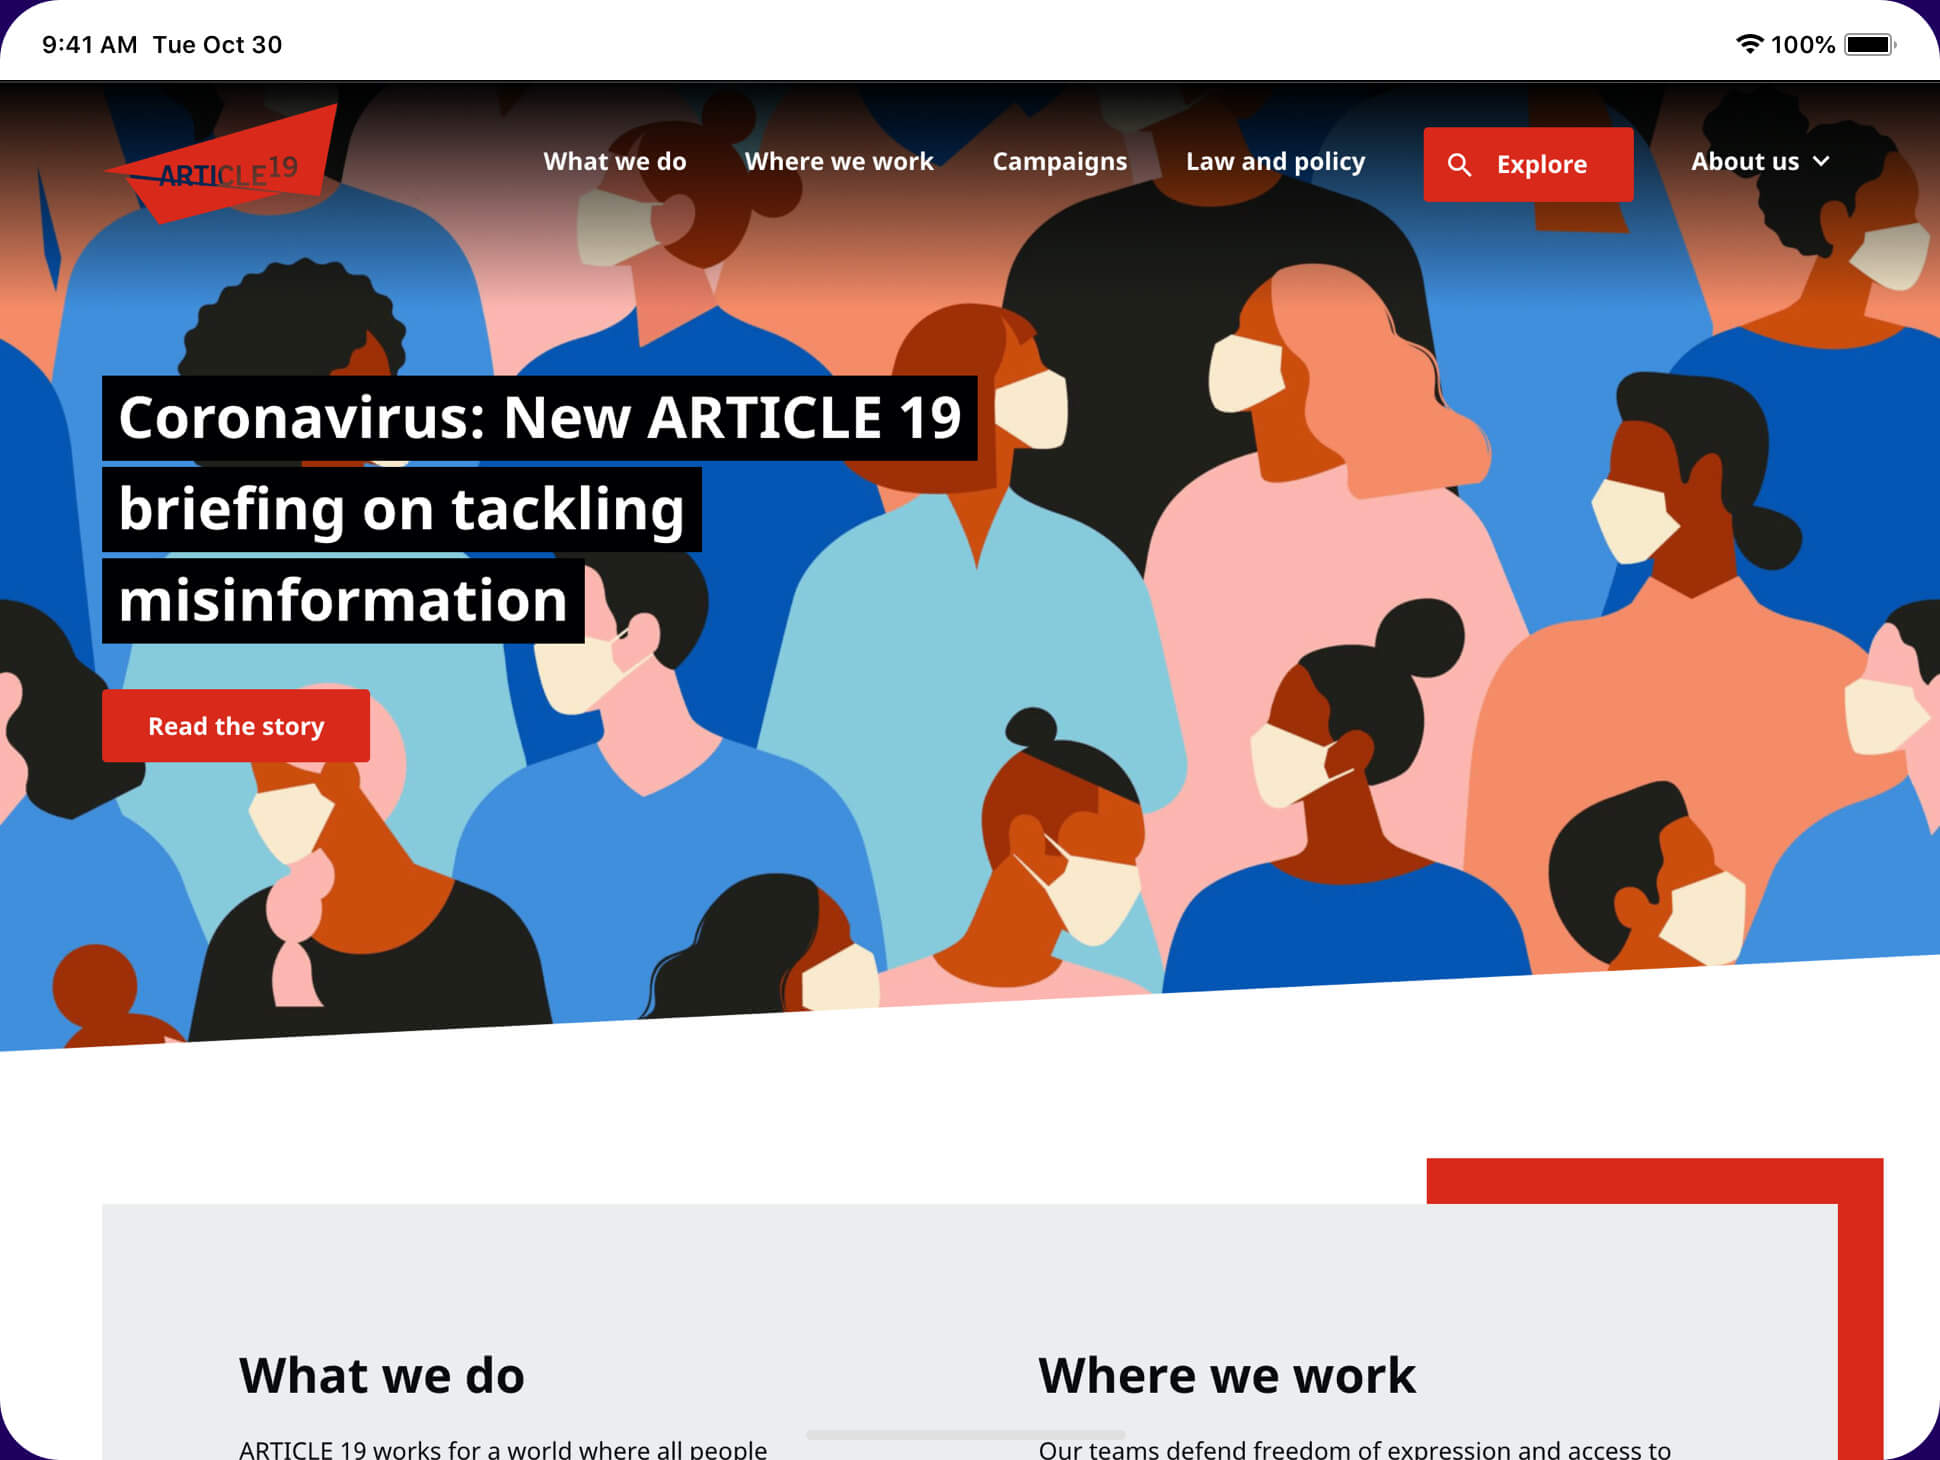 image of article 19 homepage